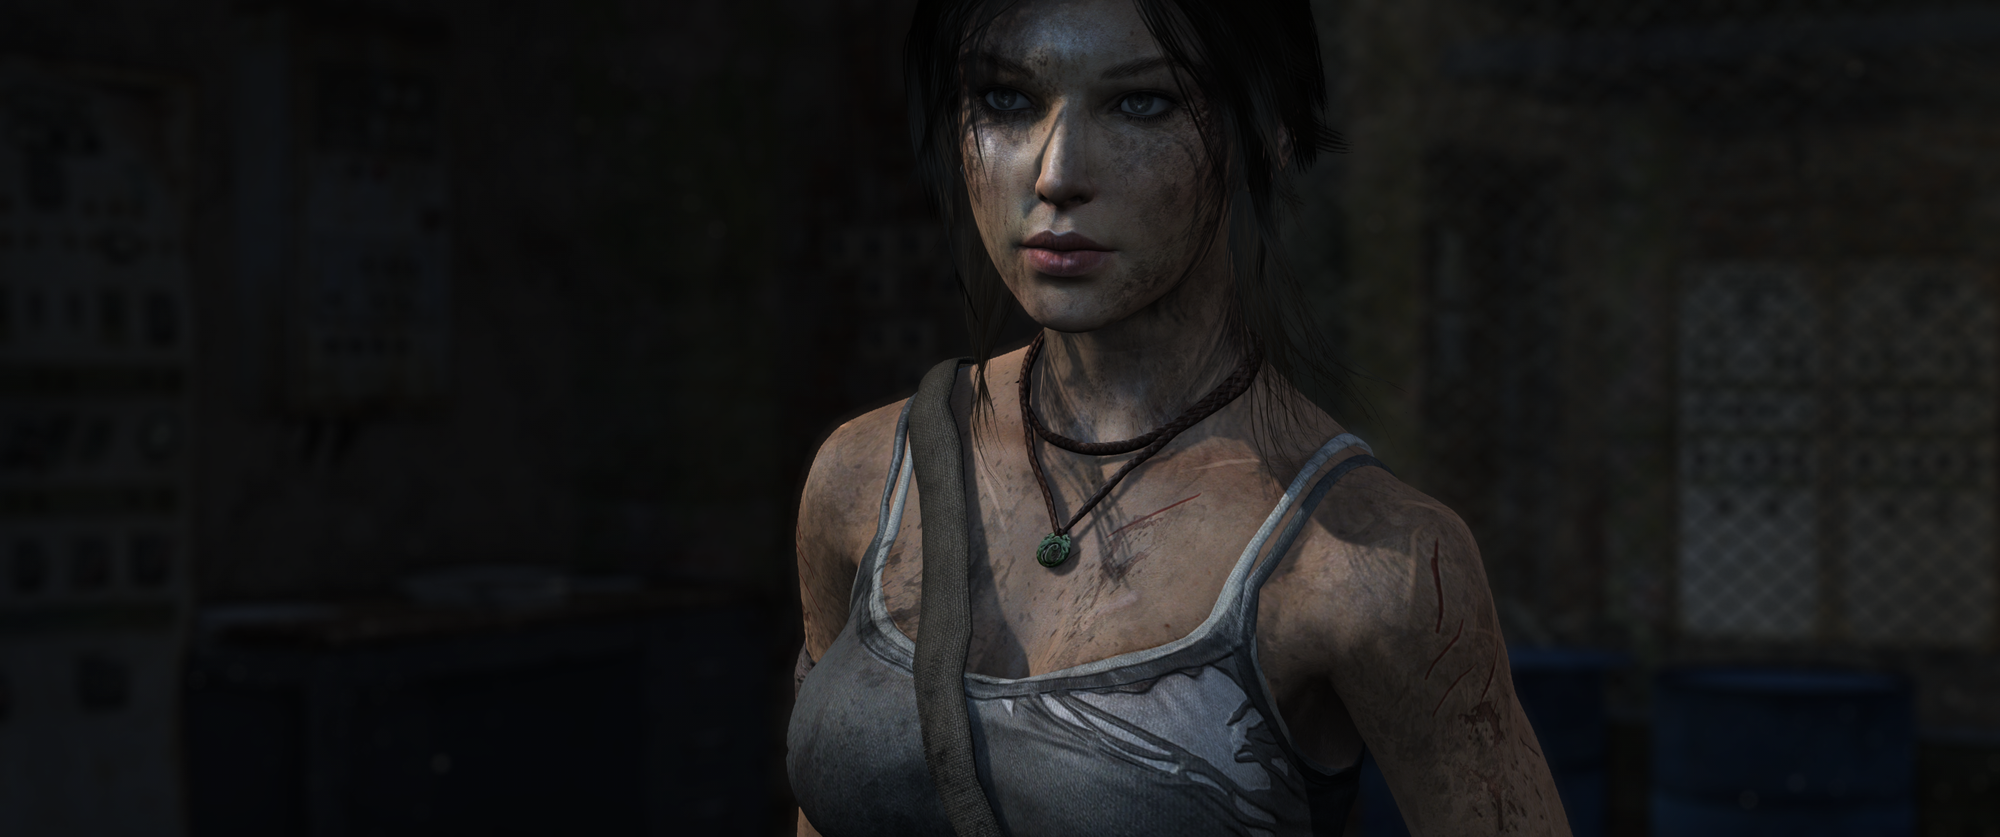 TombRaider_2018_07_25_17_15_25_942.png